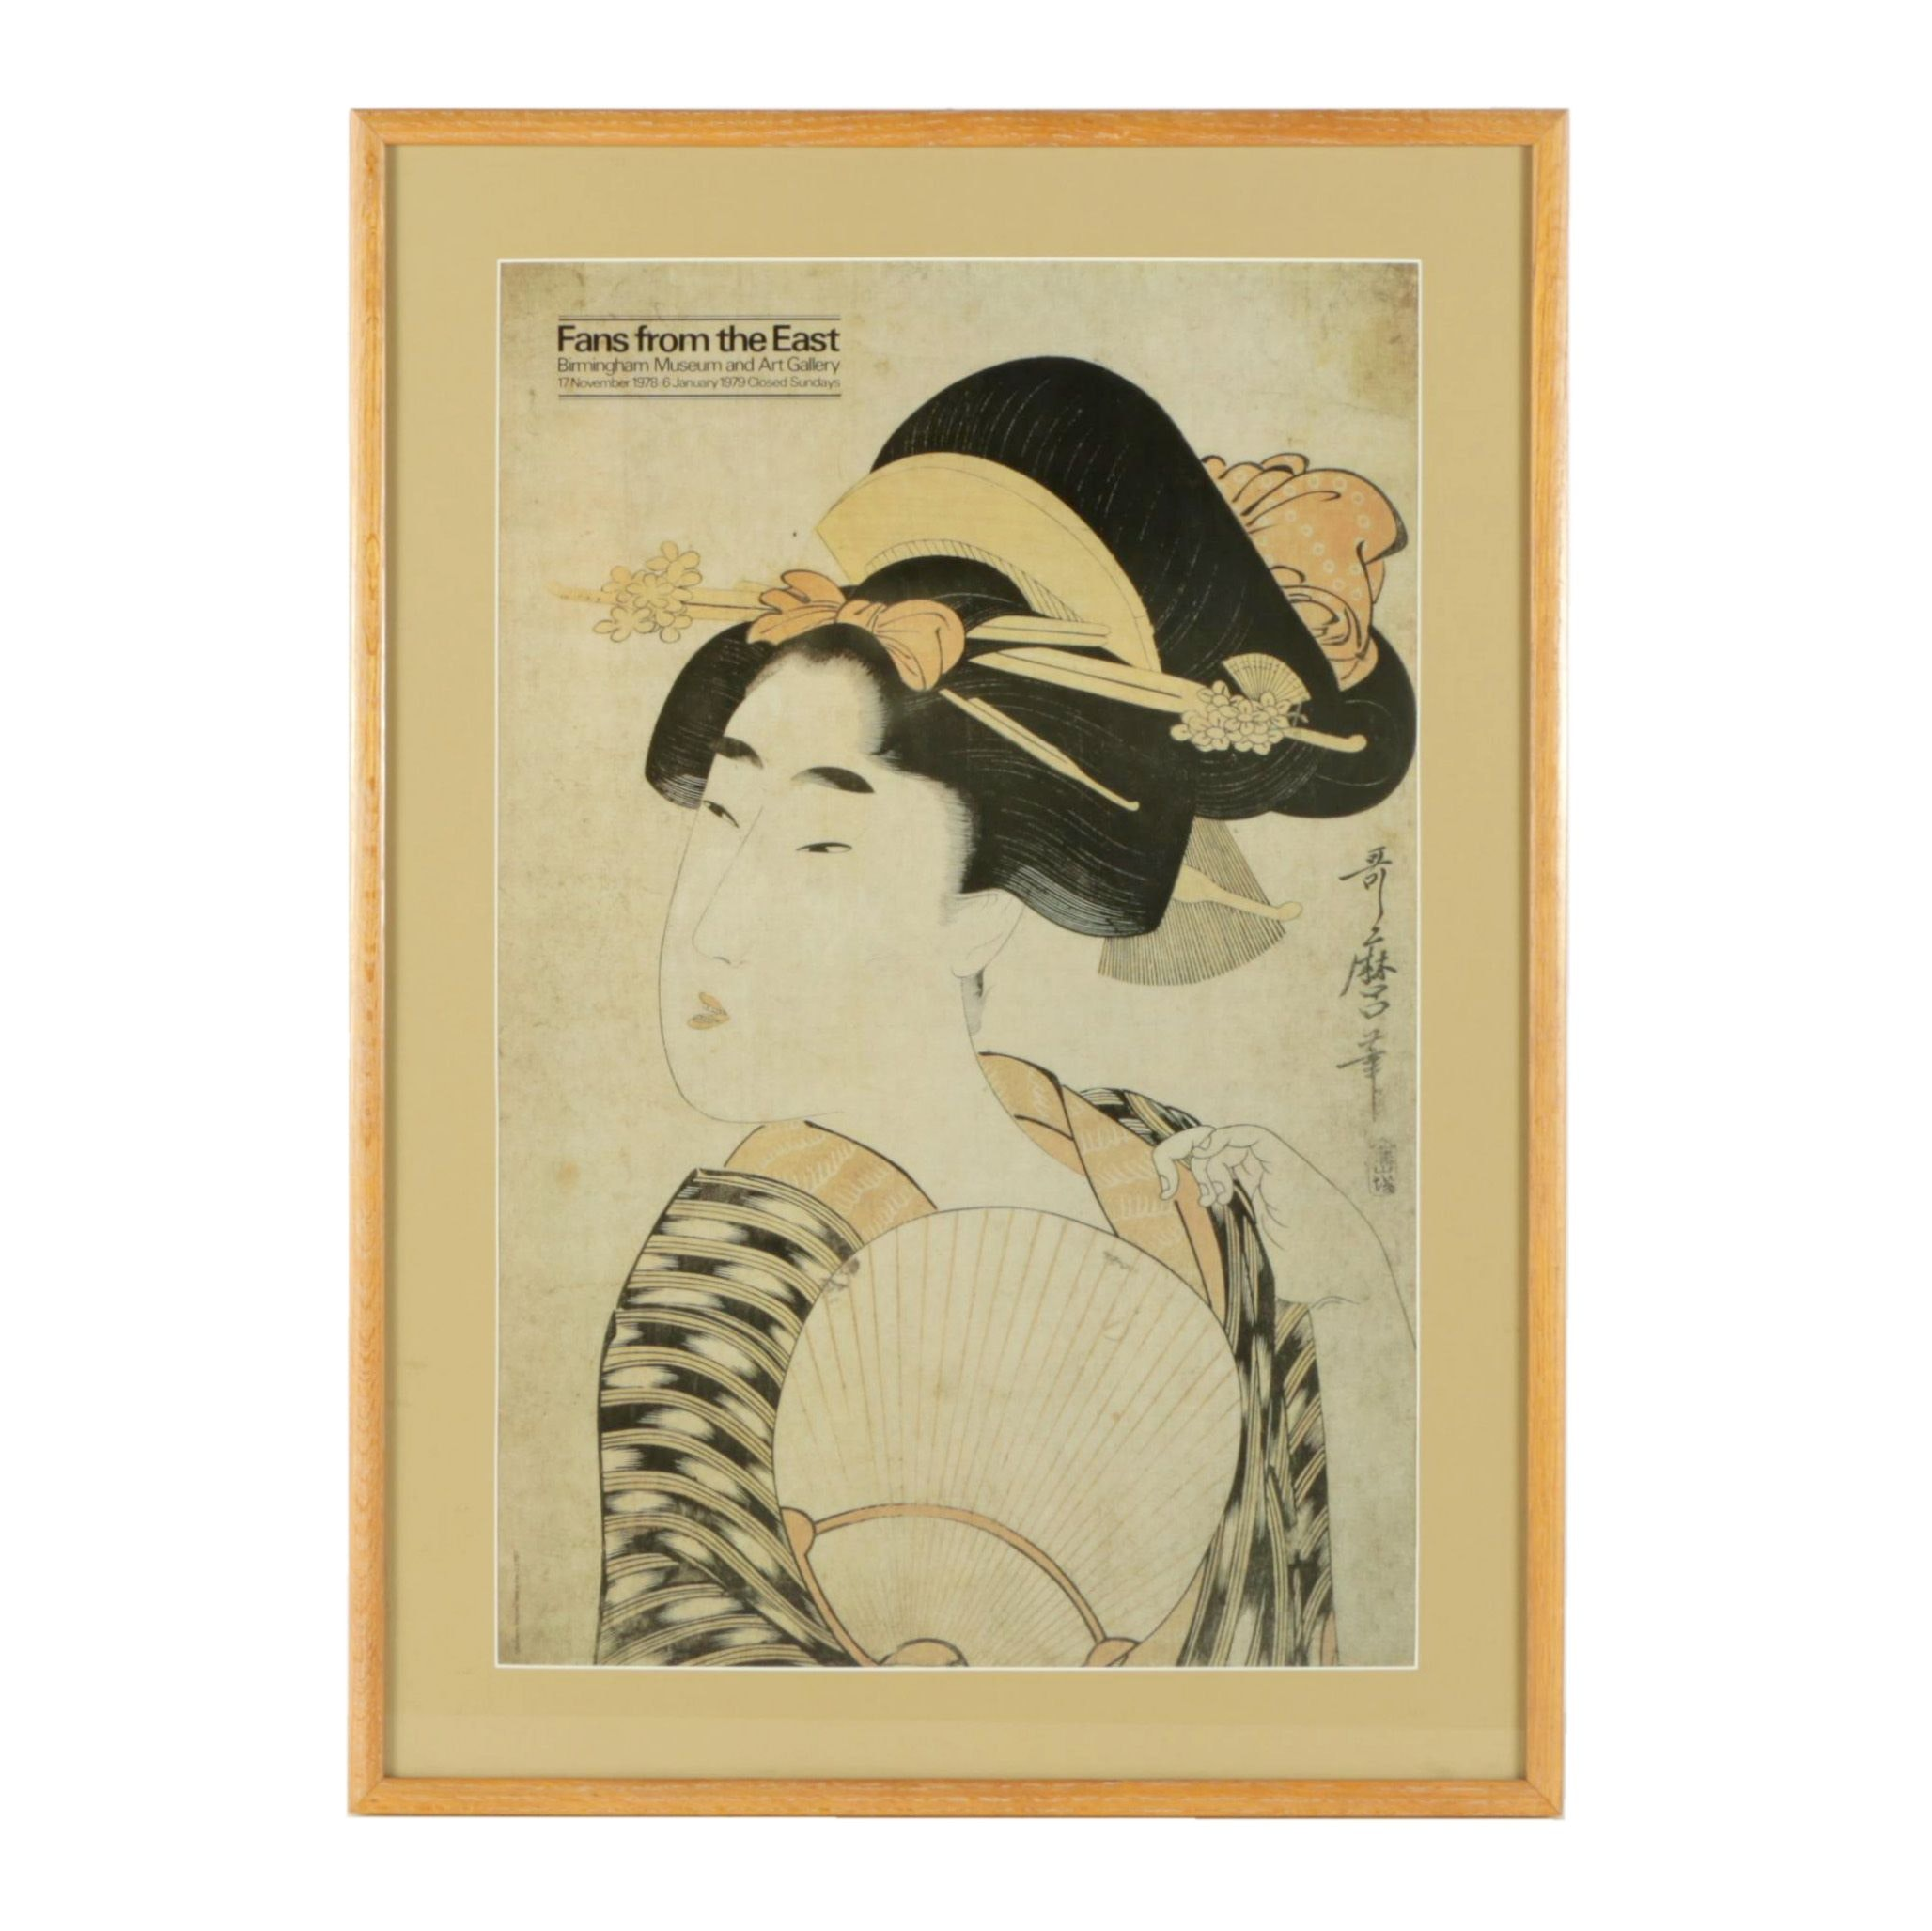 """""""Fans from the East"""" Gallery Poster After Kitagawa Utamaro's """"Woman with a Fan"""""""